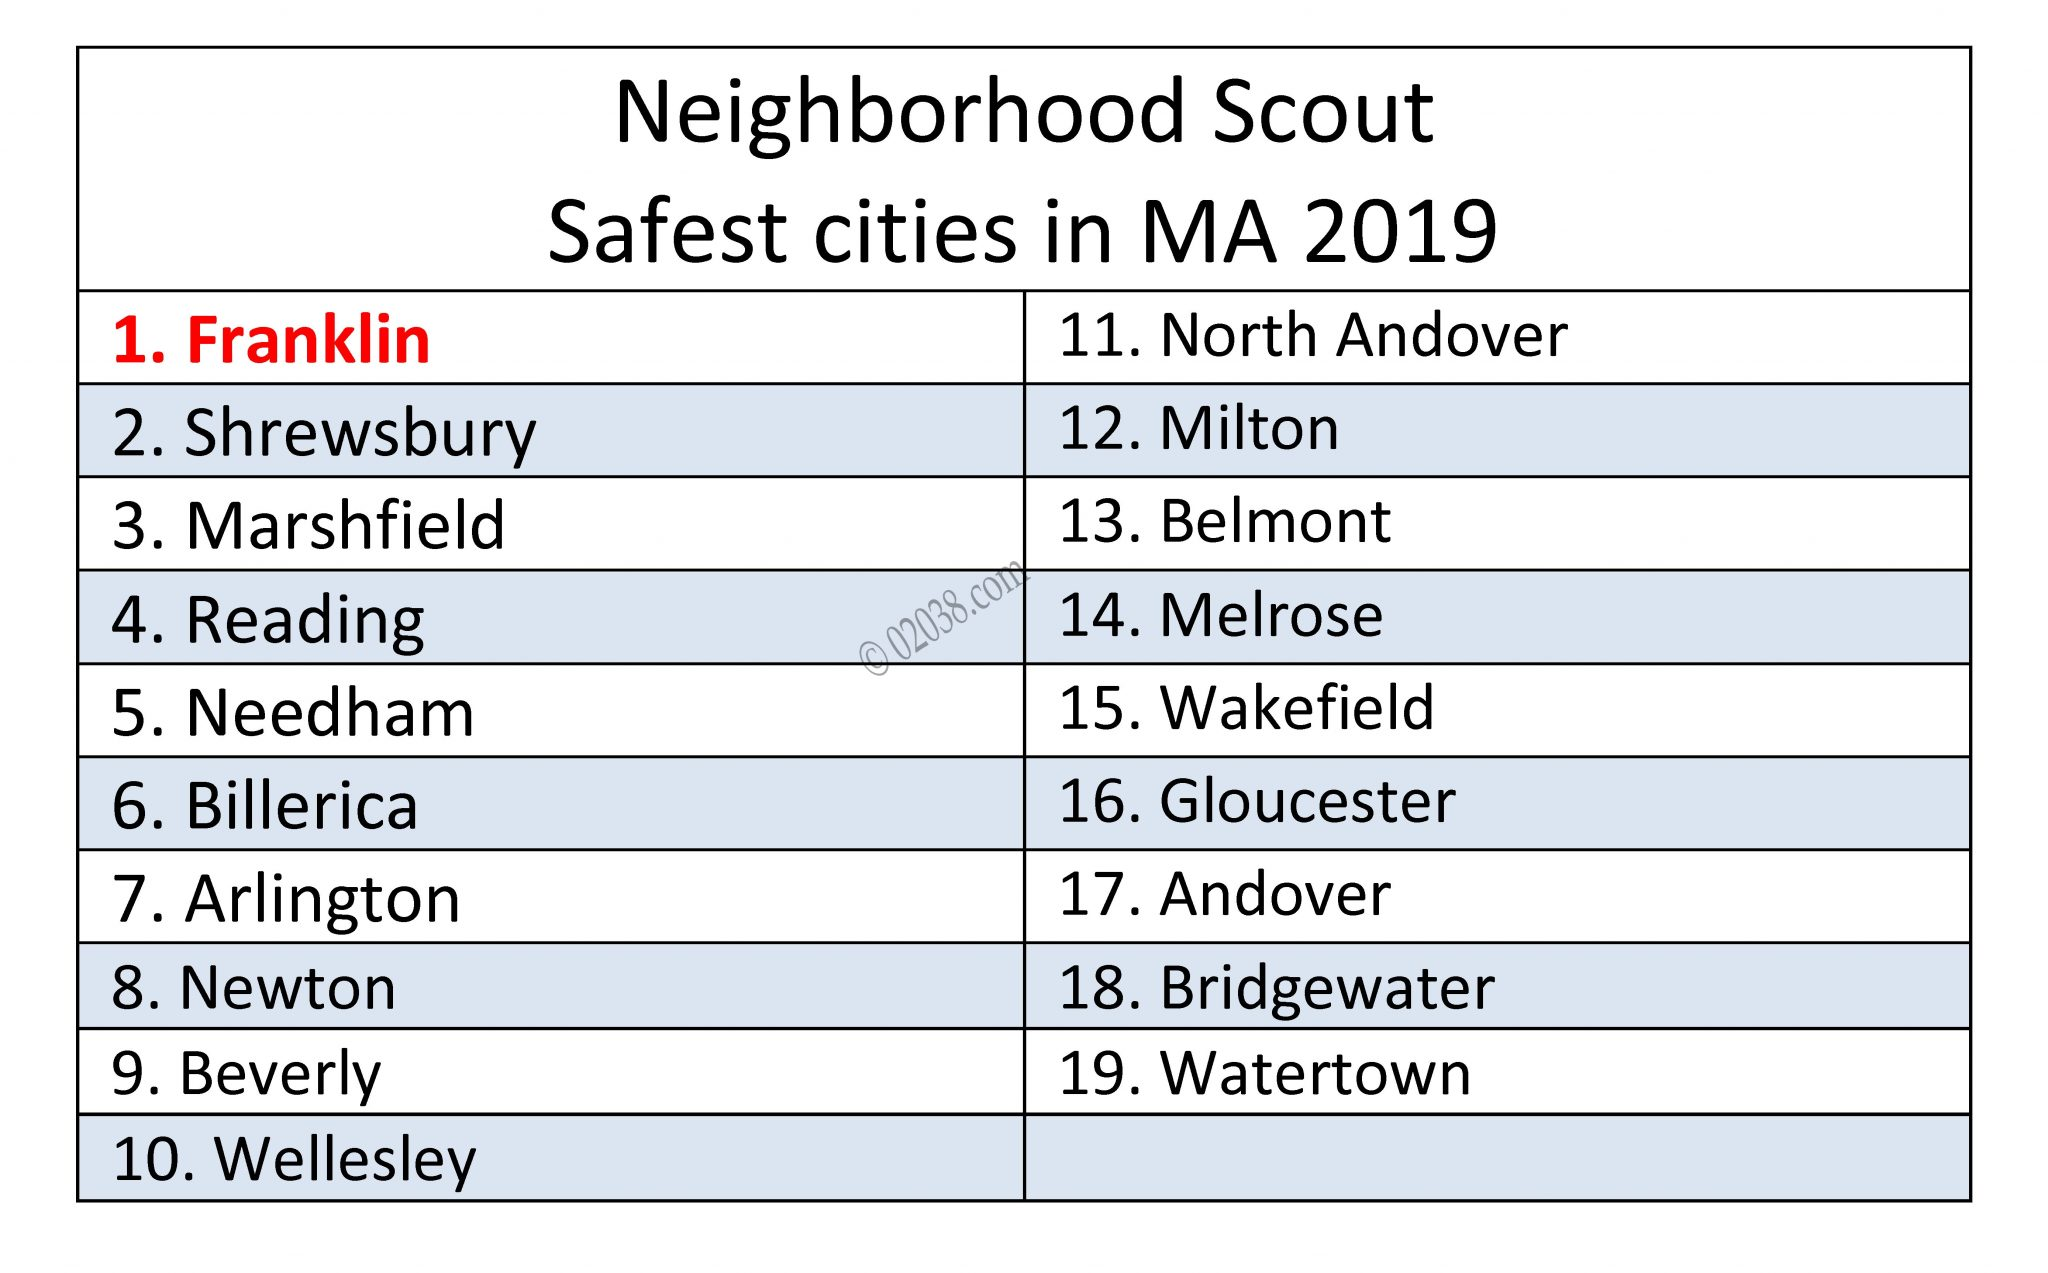 Franklin MA safest city safety